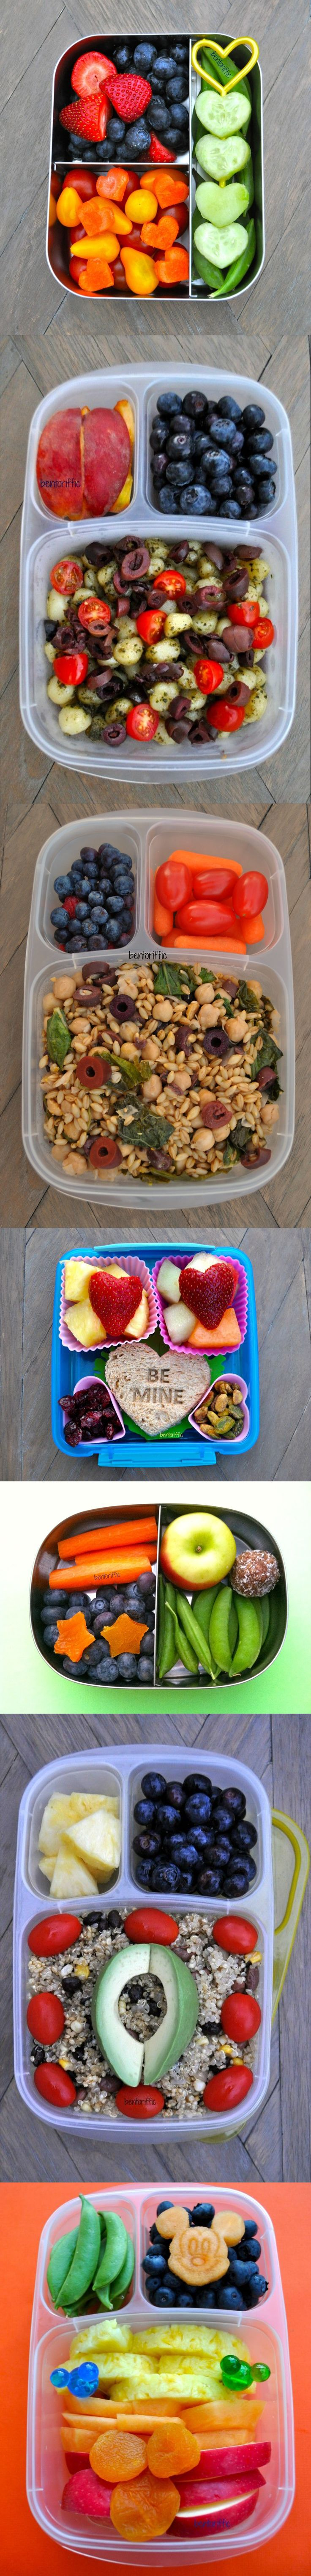 Healthy bento/lunch box inspiration